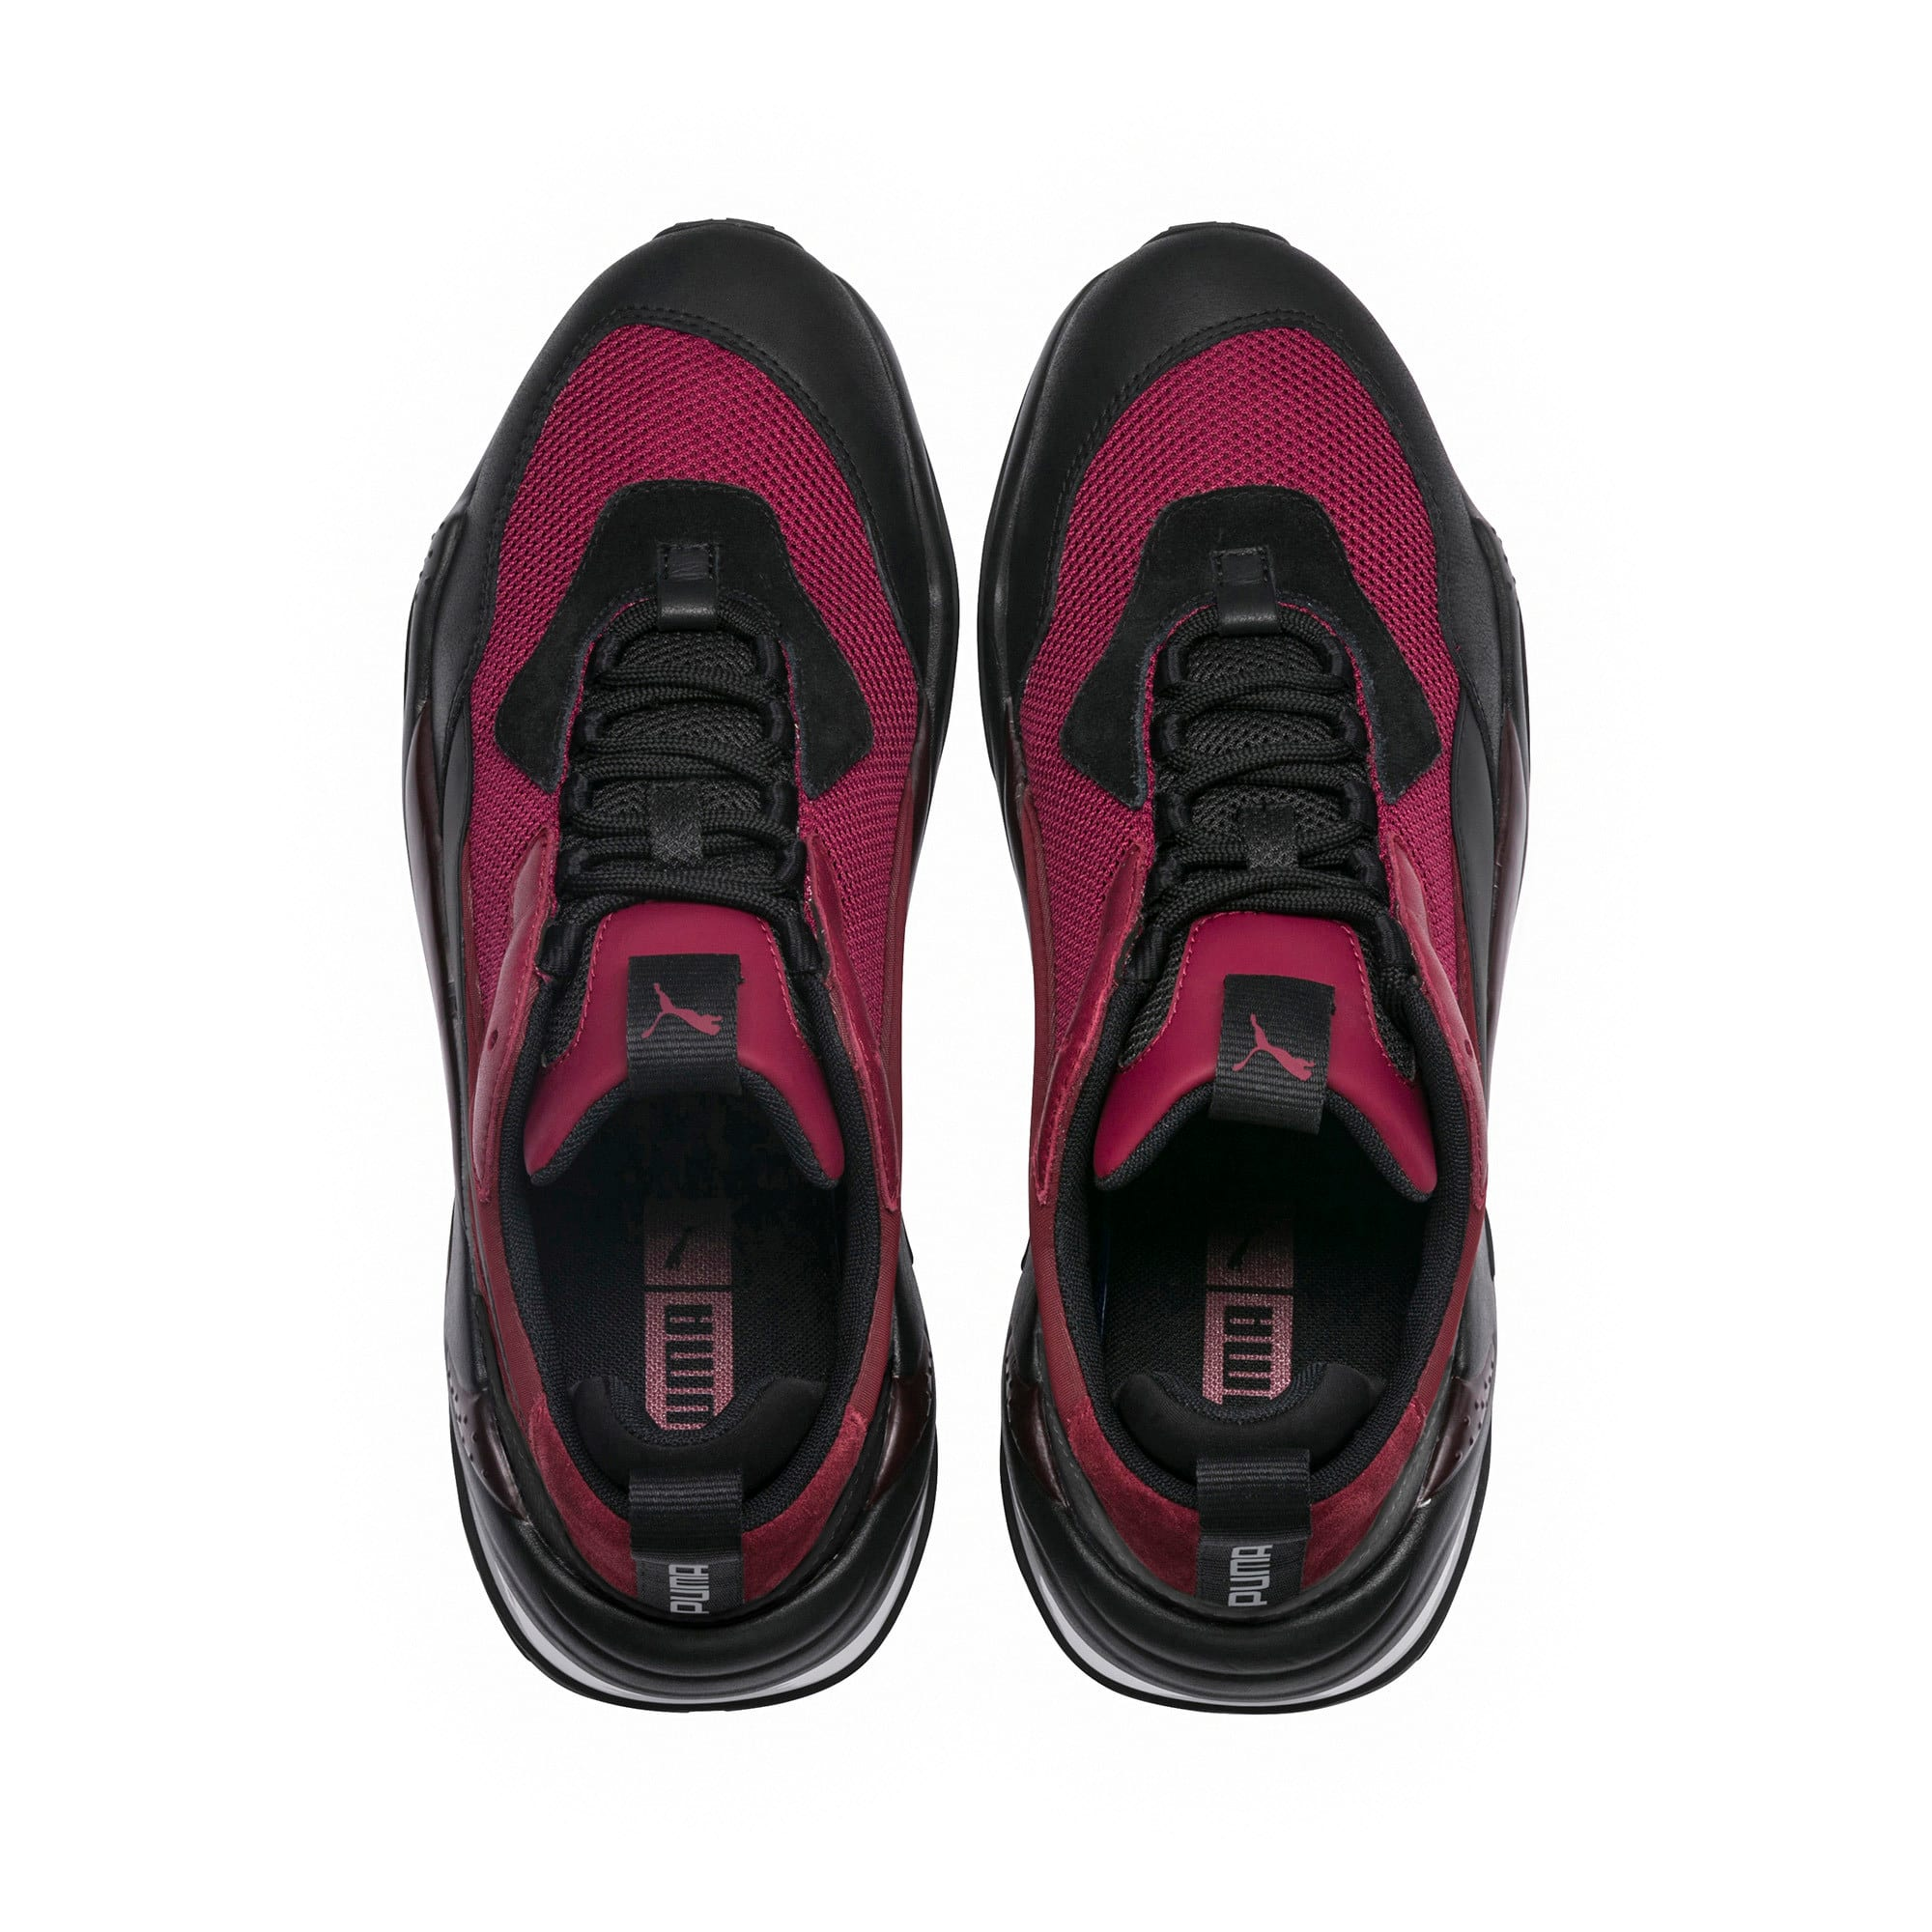 Thumbnail 5 of Thunder Spectra Trainers, Rhododendron-P Black-T Port, medium-IND